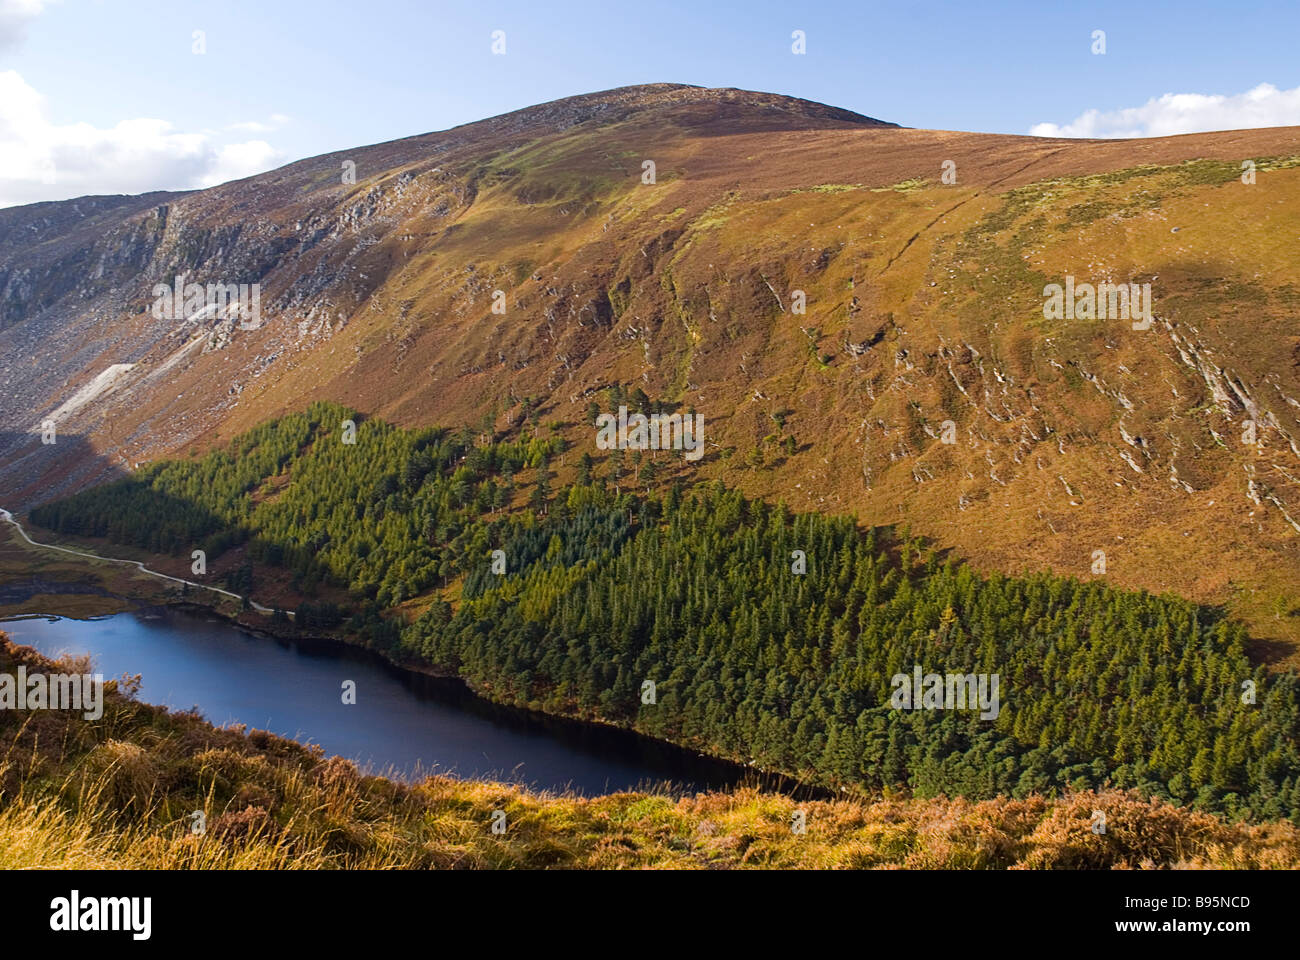 Ireland, County Wicklow, Glendalough. View west from the Spink Walk on the hills above Glendalough. - Stock Image